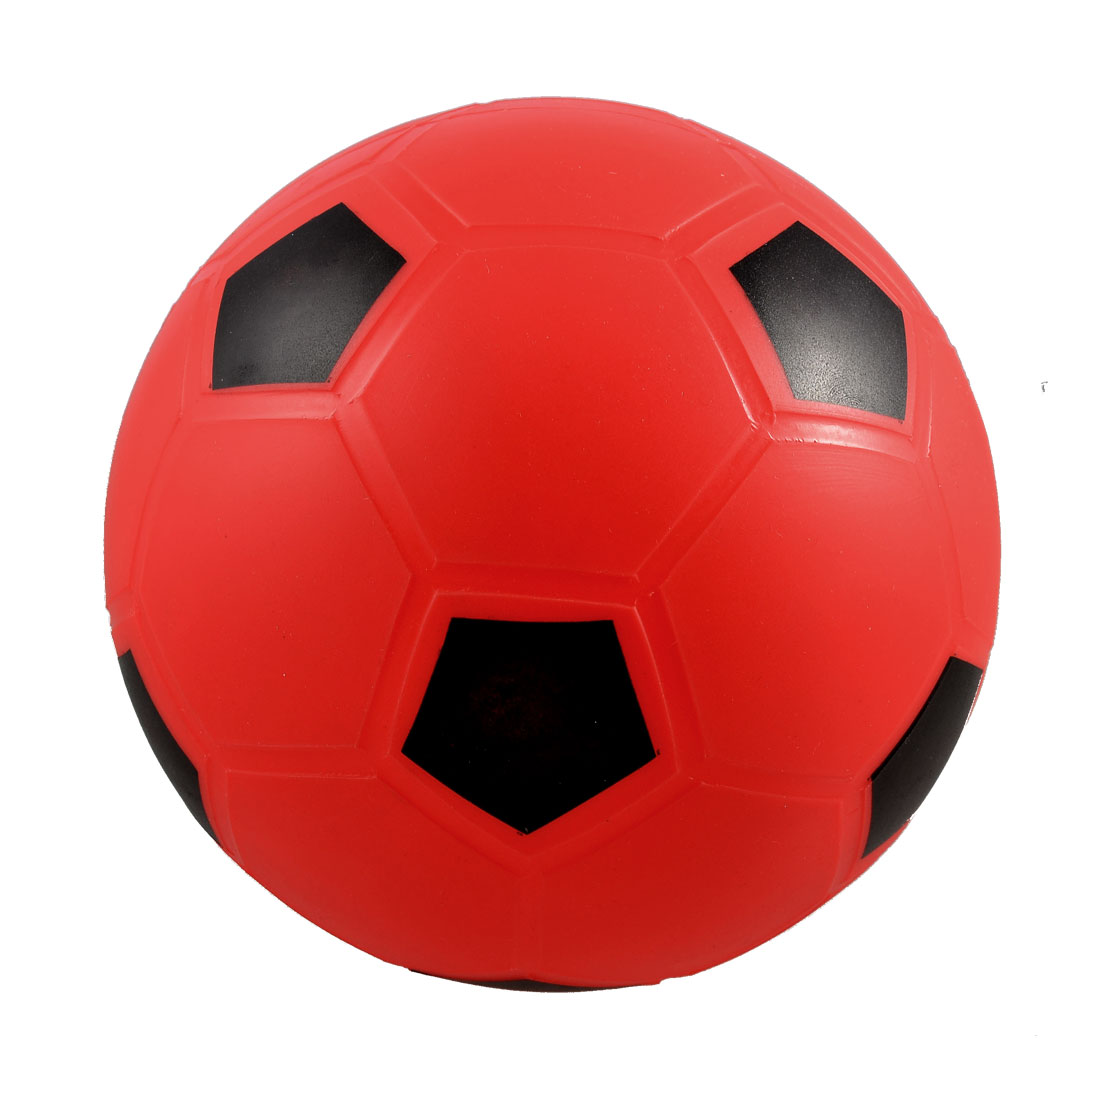 "Kids Children 5.5"" Inflatable Dia Red PVC Football Soccer Toy"